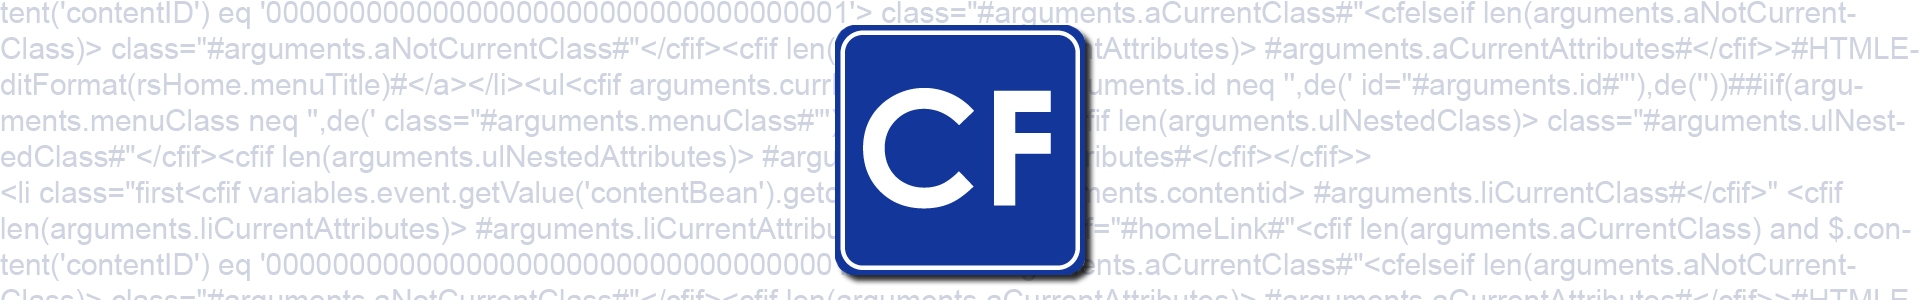 ColdFusion Development image